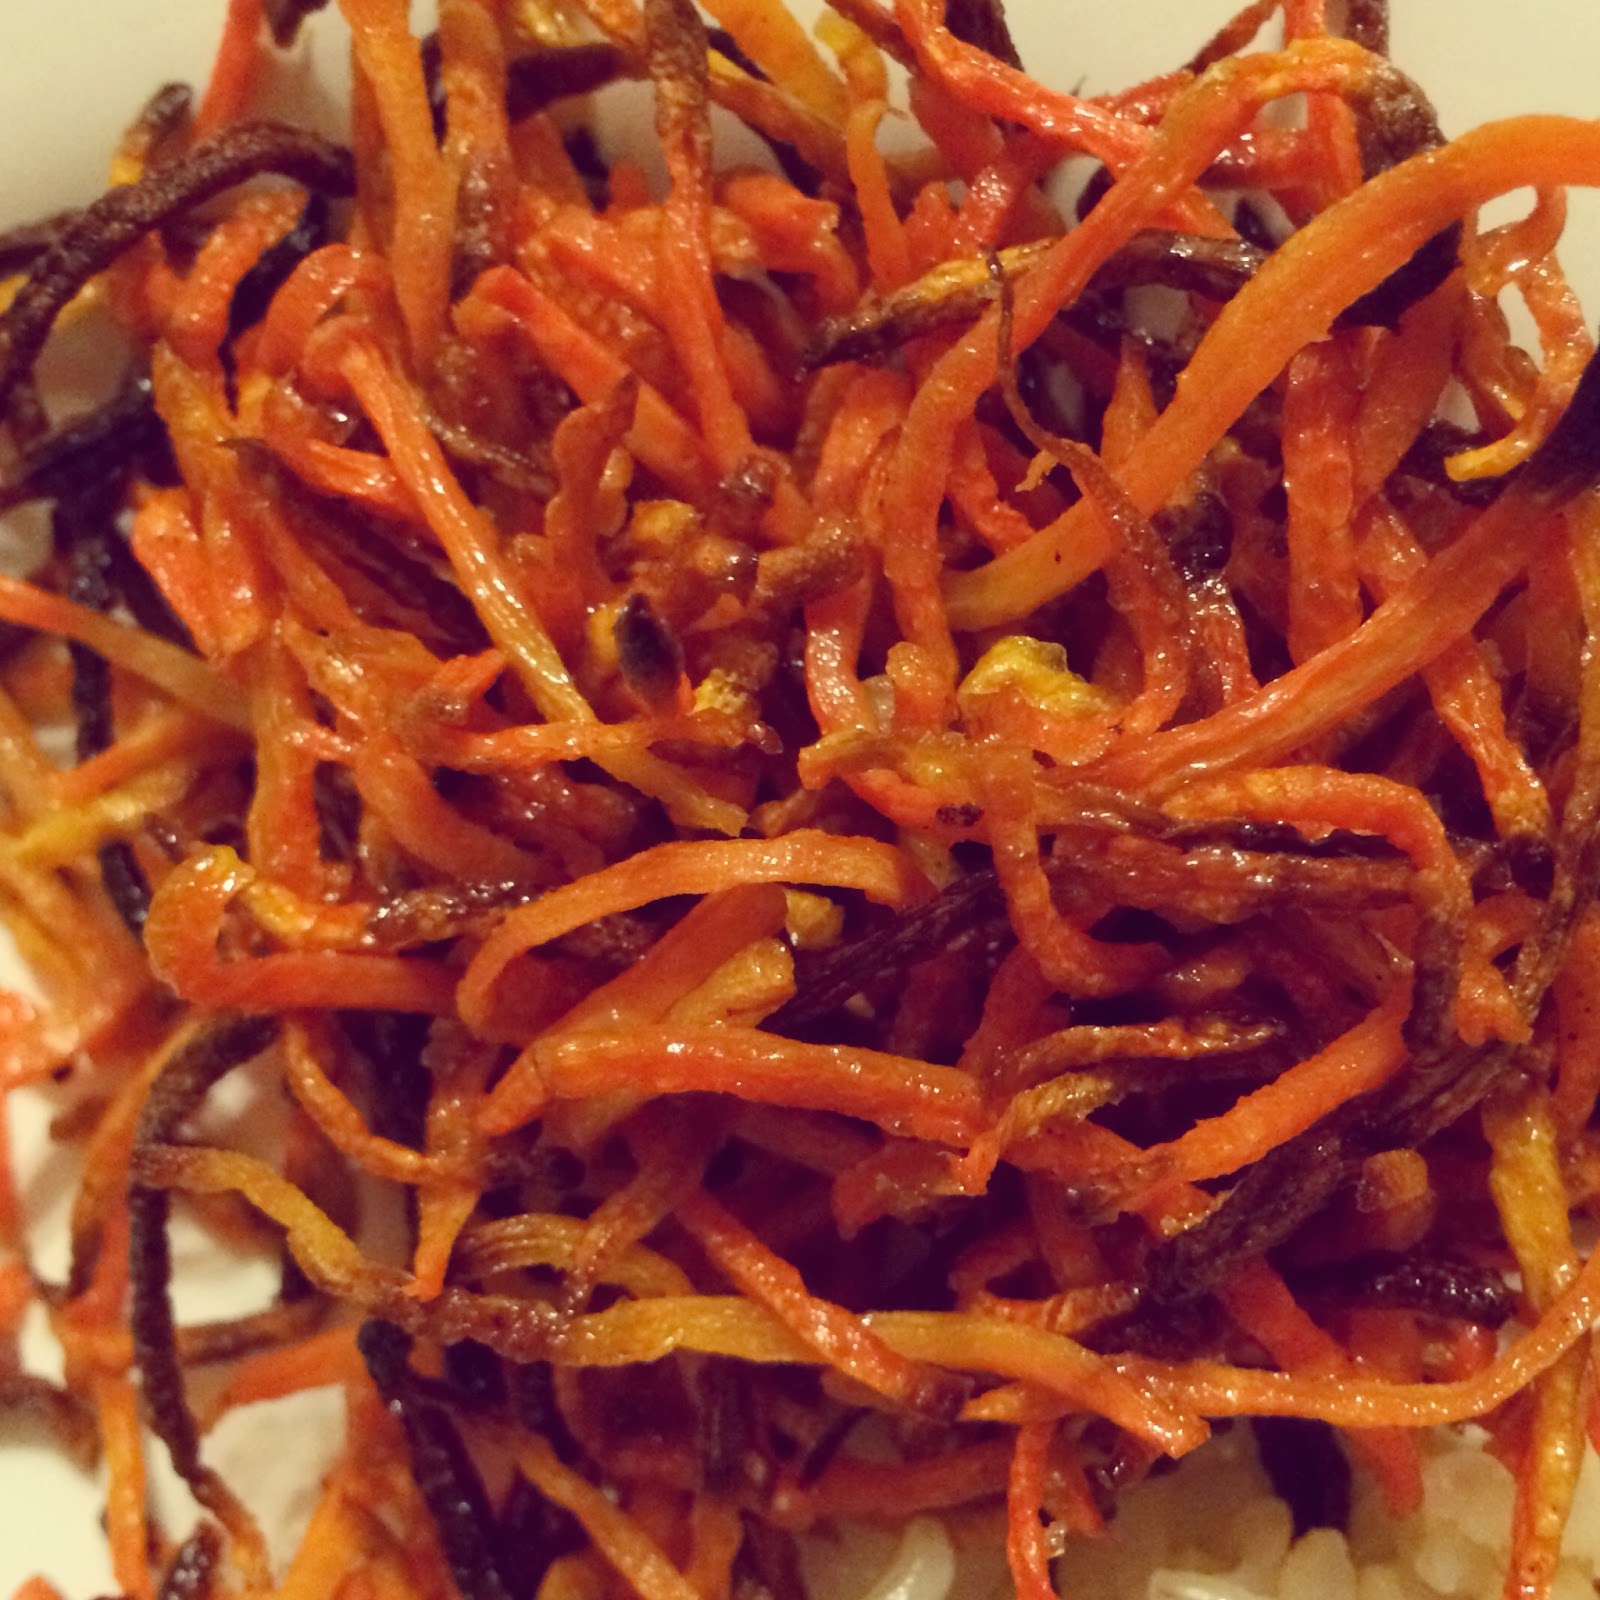 Little Cook in the Big City: Oven Baked Shredded Carrot Fries